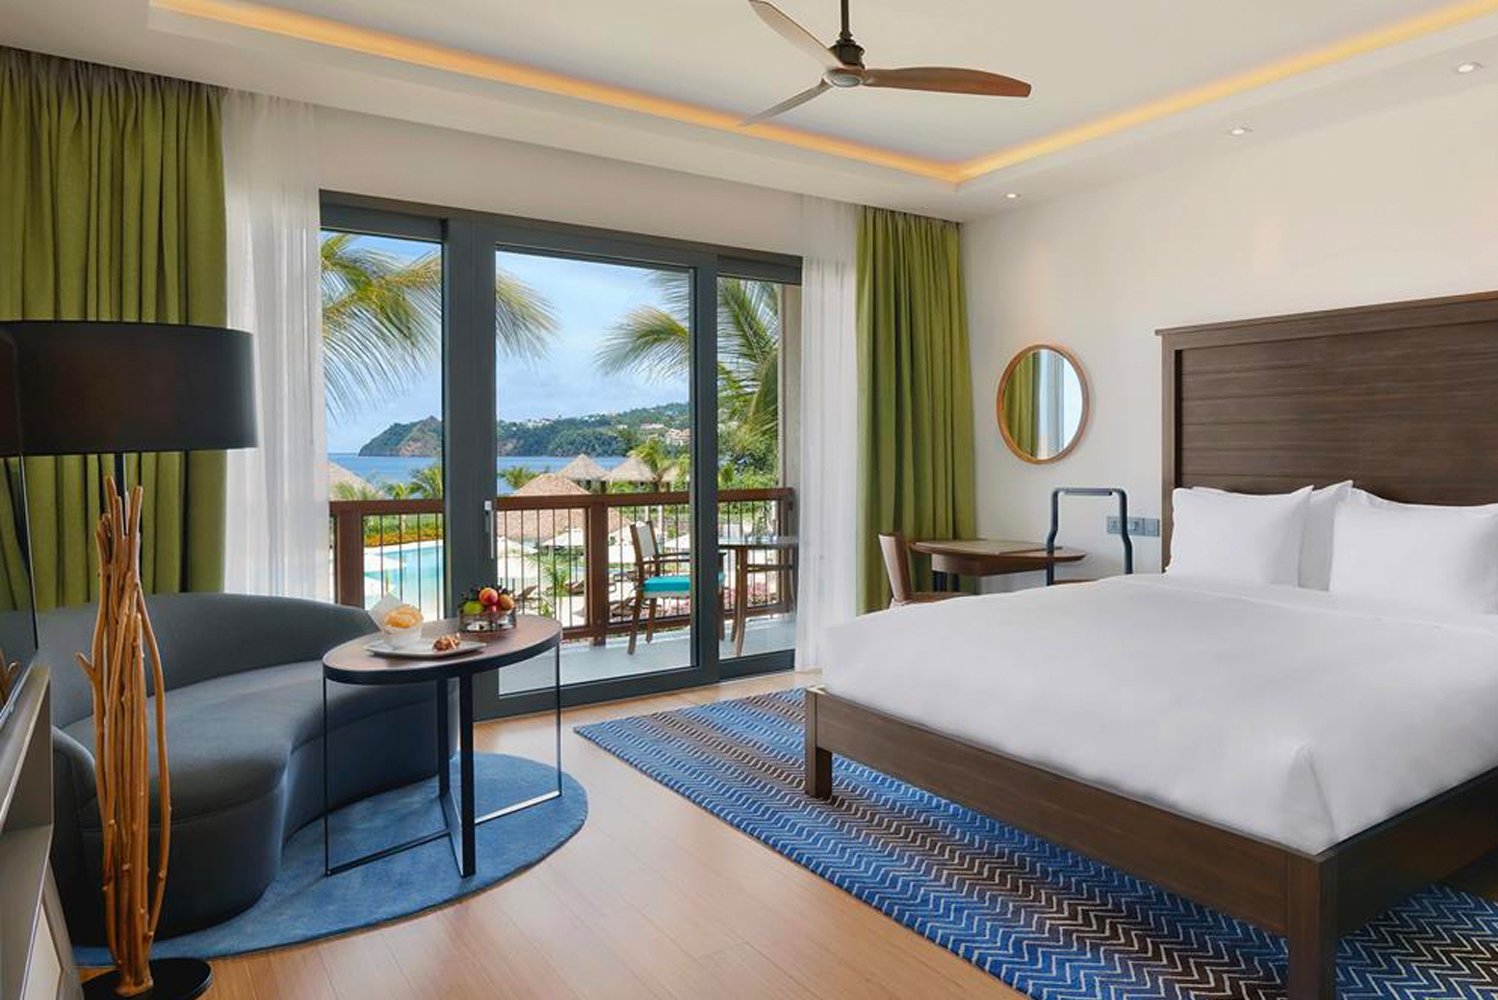 All of the resort's 151 guestrooms and suites have mountain or ocean views.